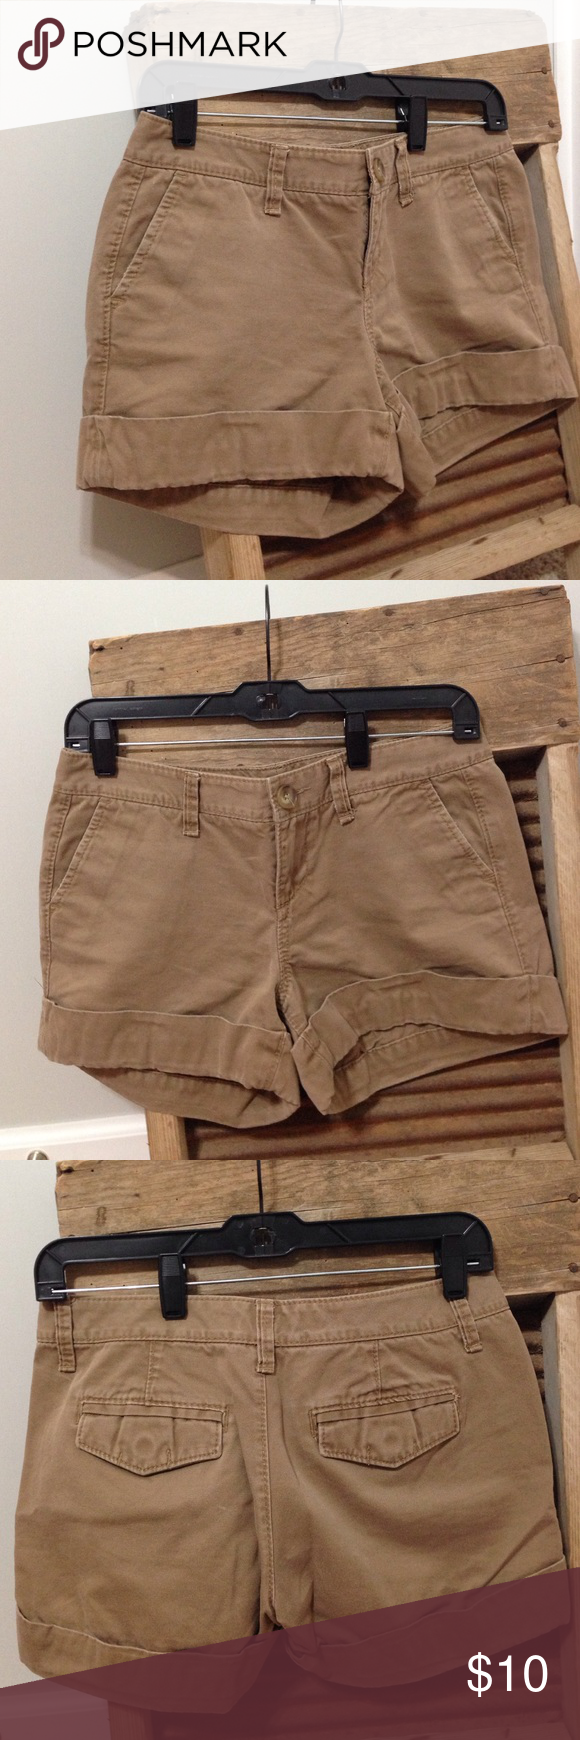 🏜Safari shorts Old Navy brand. These tan shorts have a cuff on the bottom and are a size 2 and low rise. 100% cotton! Great for any occasion! Pockets in the front and back! The pockets in the back have buttons! Who doesn't love buttons? Old Navy Shorts